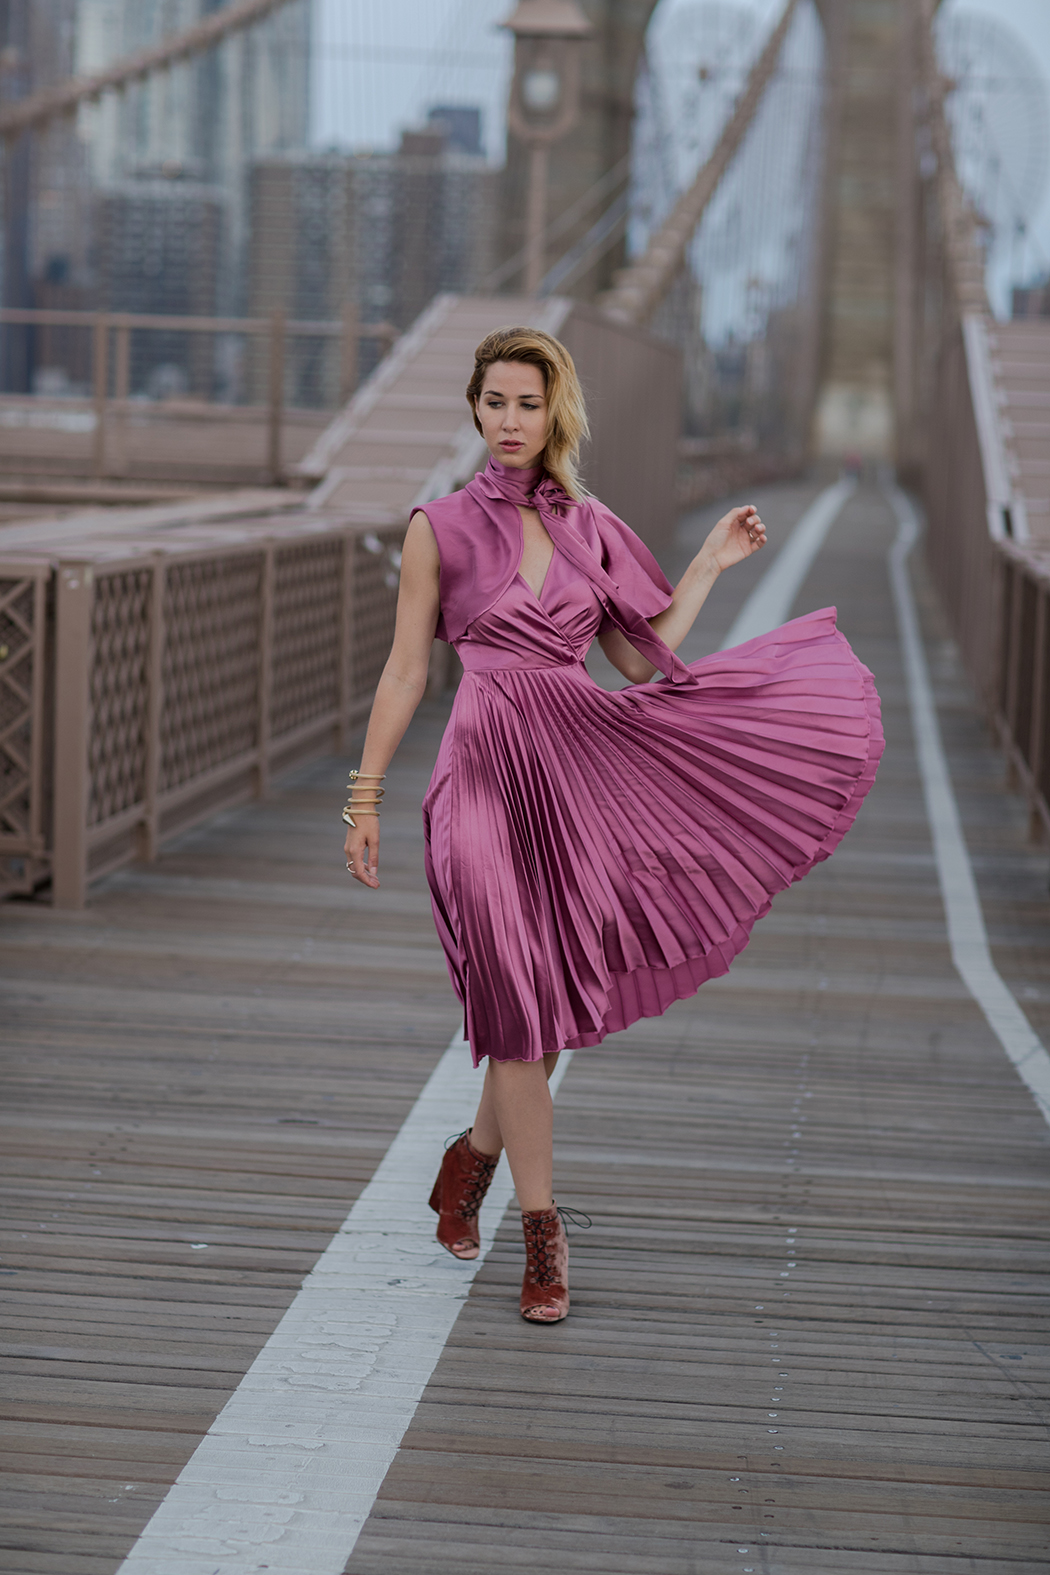 fashionblog-fashionblogger-fashion-blog-blogger-modeblog-mode-carrie-bradshaw-brooklyn_bridge-new-york-7-web